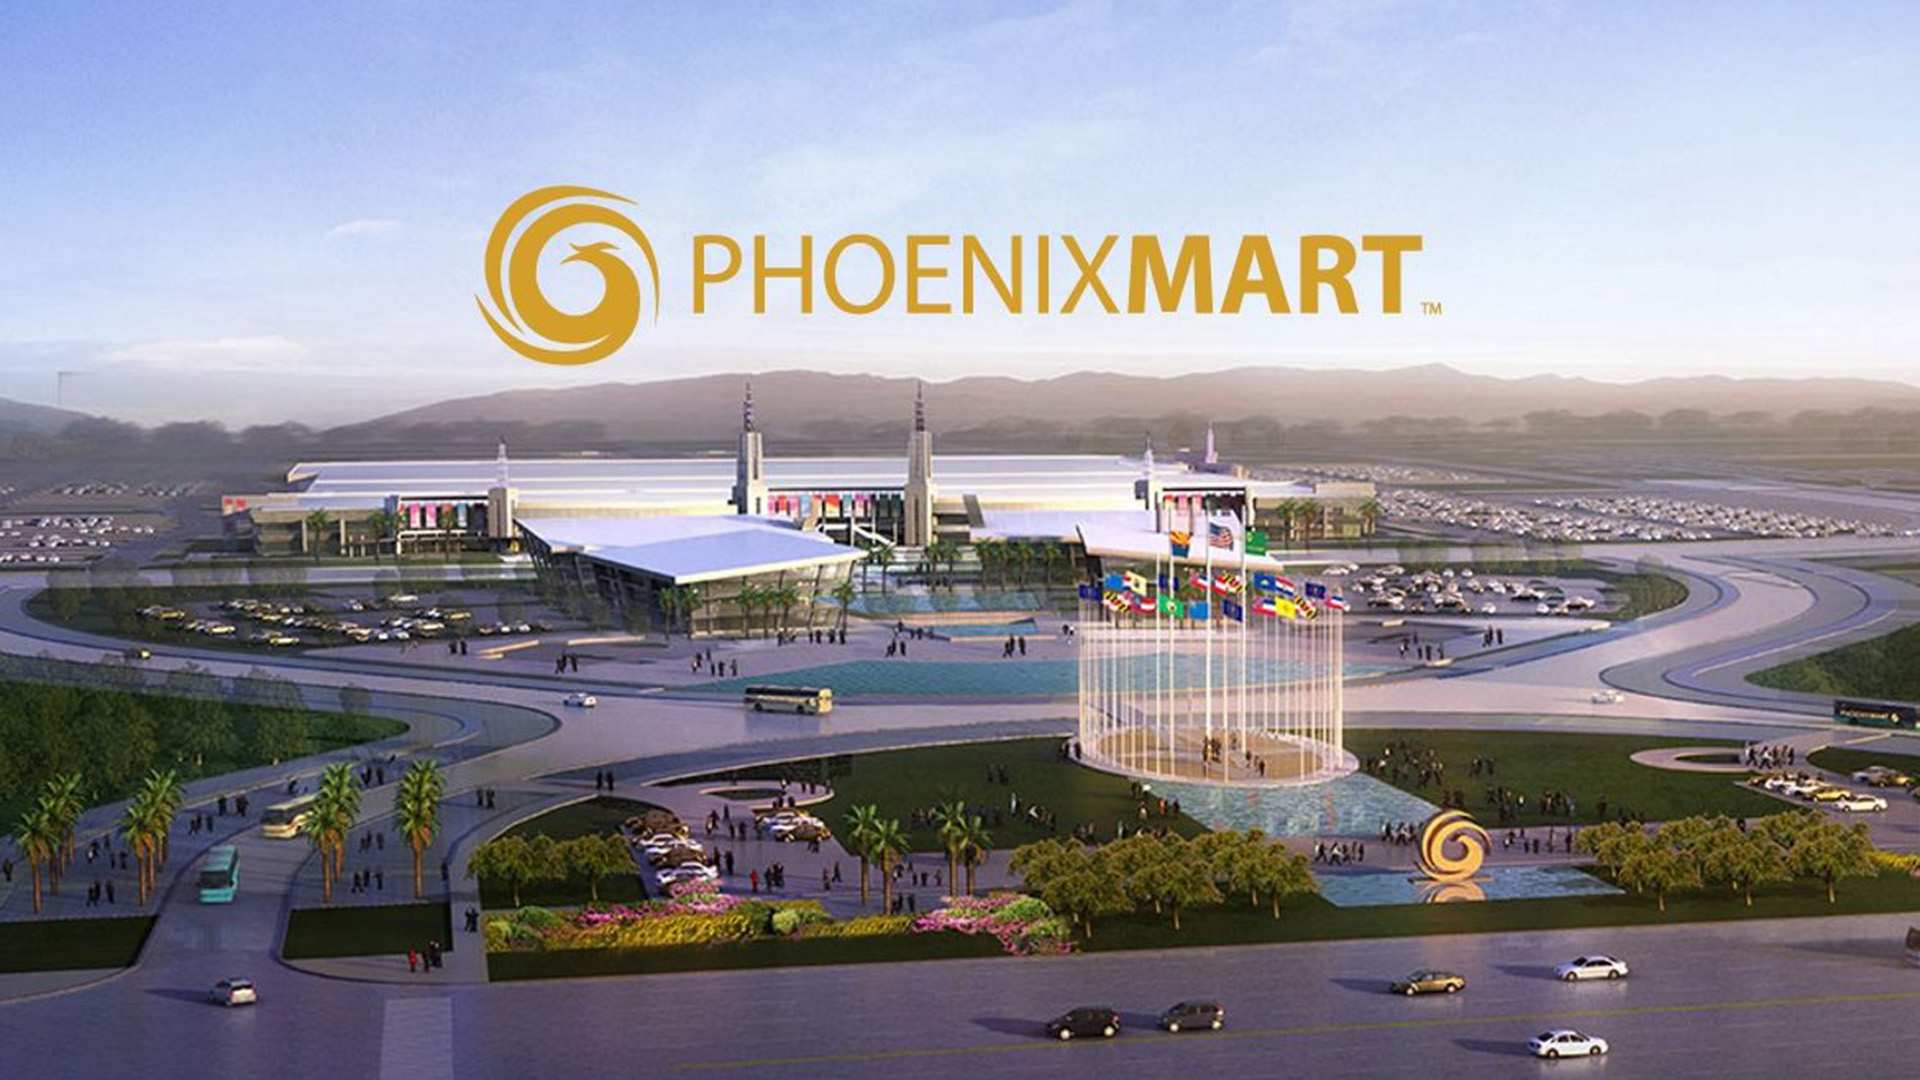 PhoenixMart initially funded with EB-5 Visa investments.